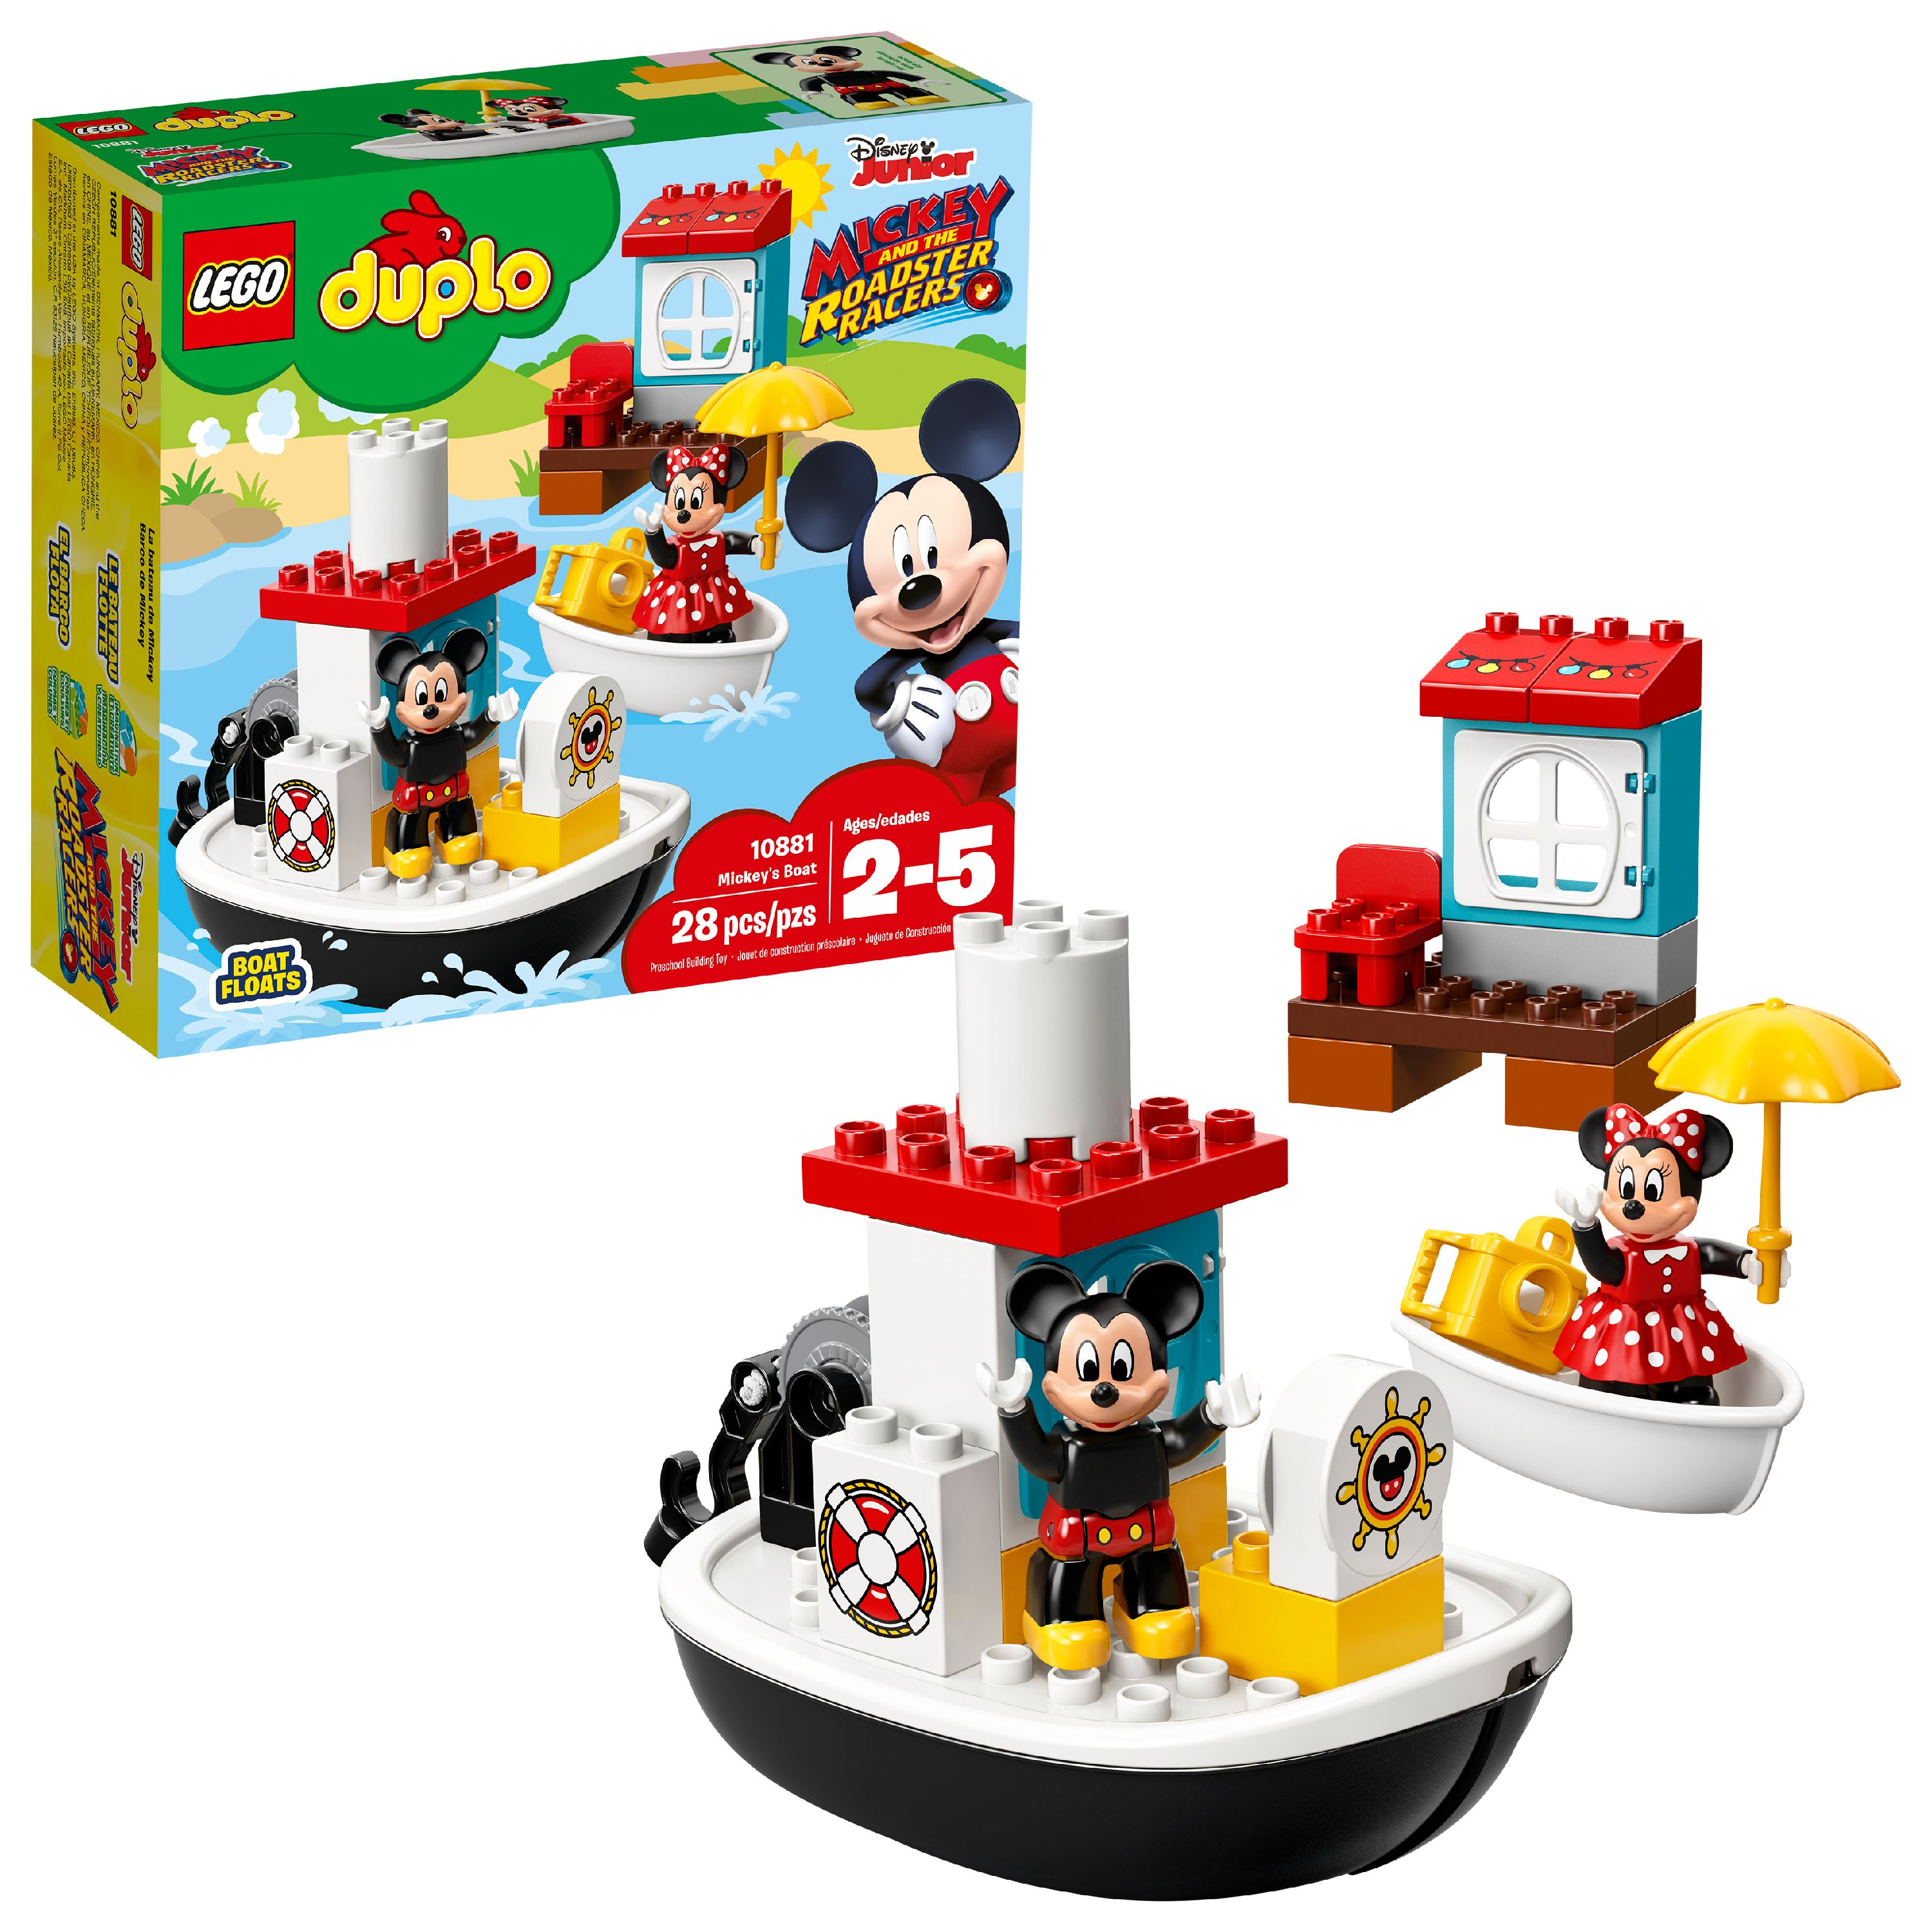 LEGO DUPLO Disney TM Mickey's Boat 10881 Building Set (28 Pieces)